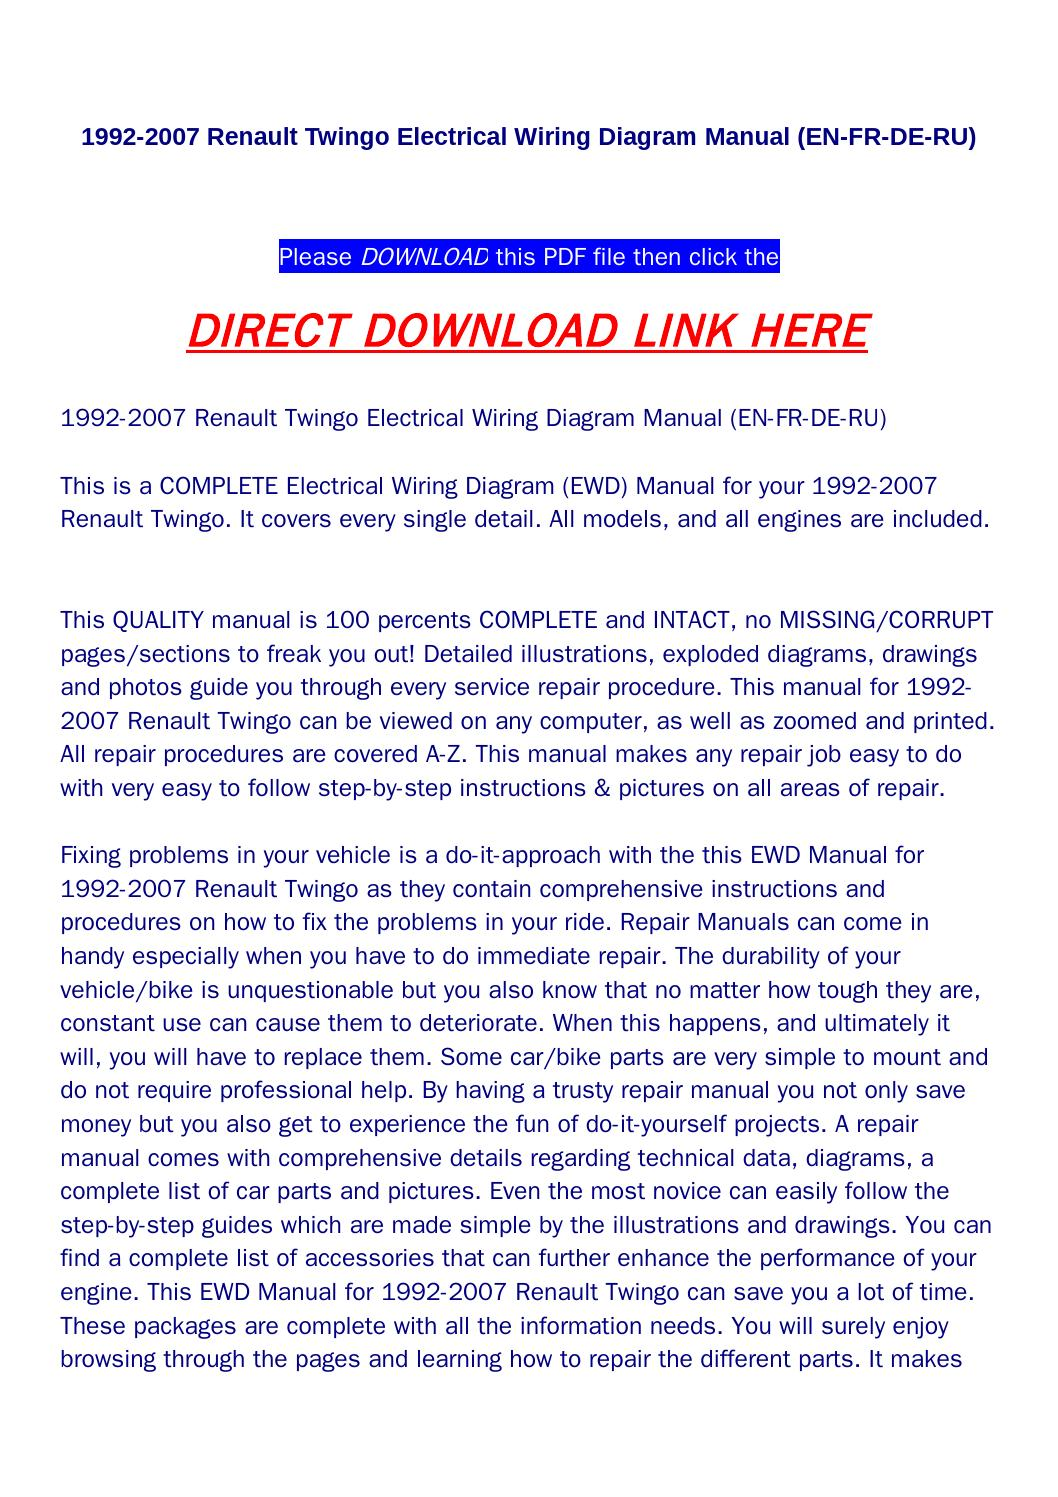 1992 2007 Renault Twingo Electrical Wiring Diagram Manual